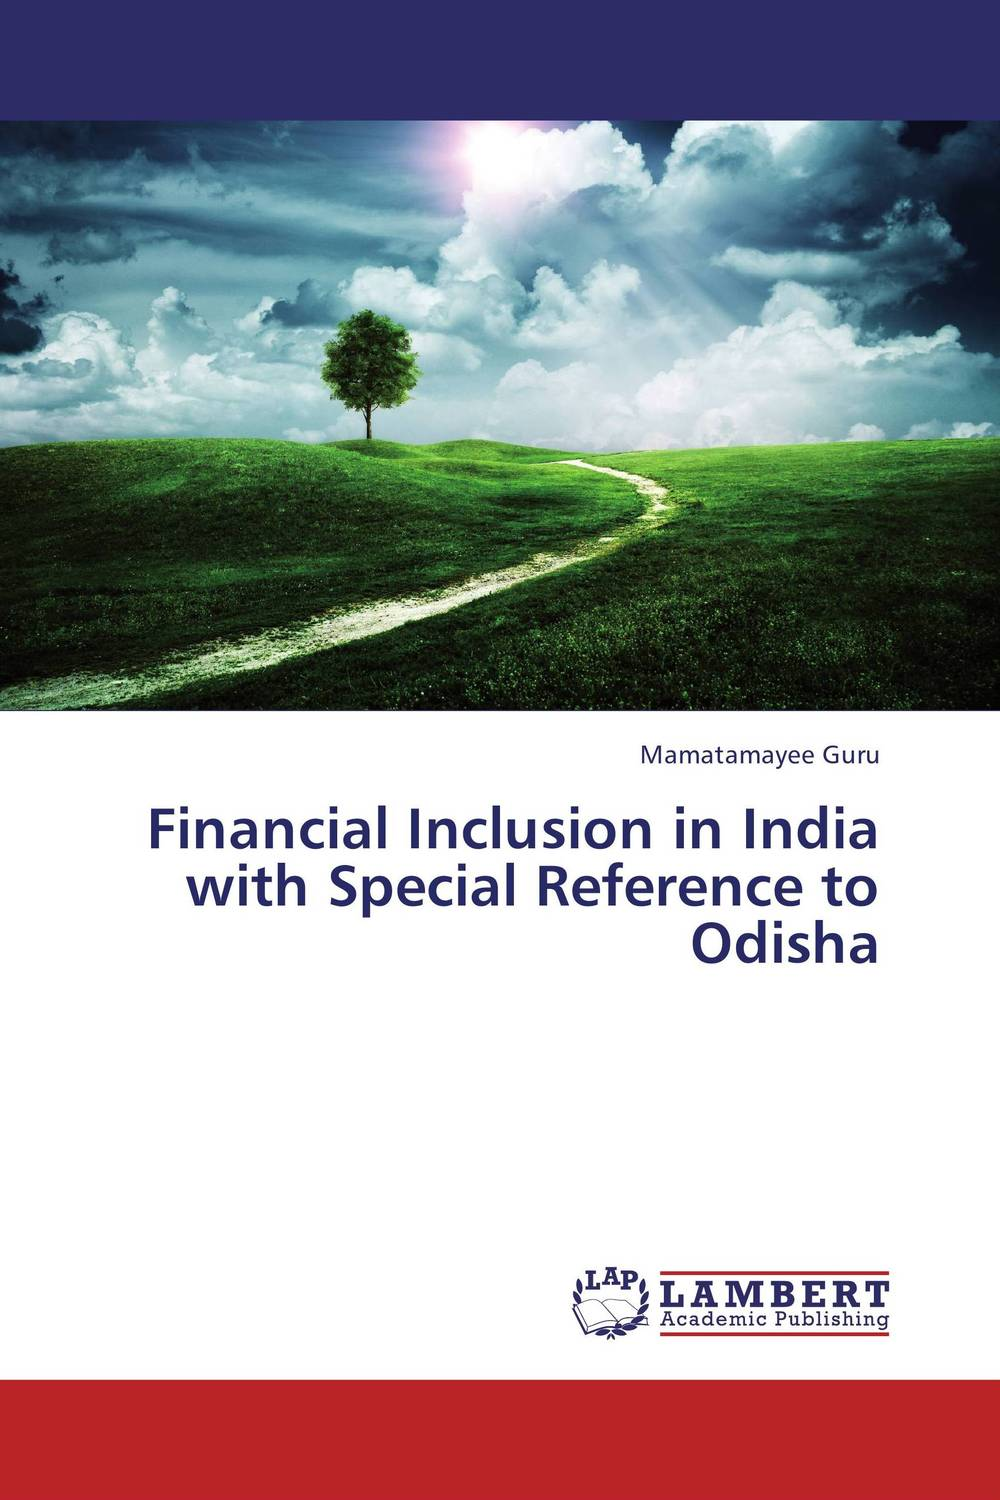 Financial Inclusion in India with Special Reference to Odisha why should i bother to keep fit